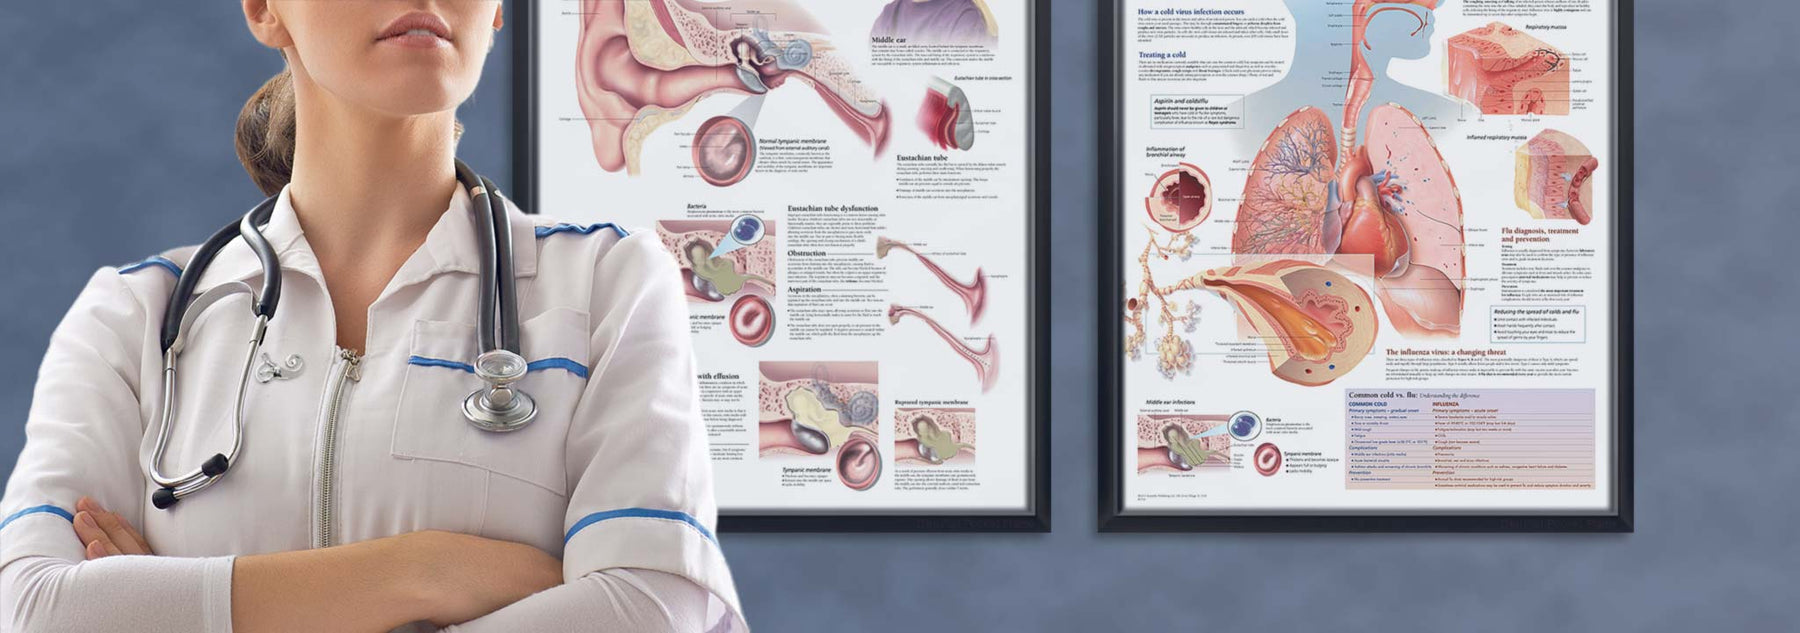 Female doctor with framed anatomy posters